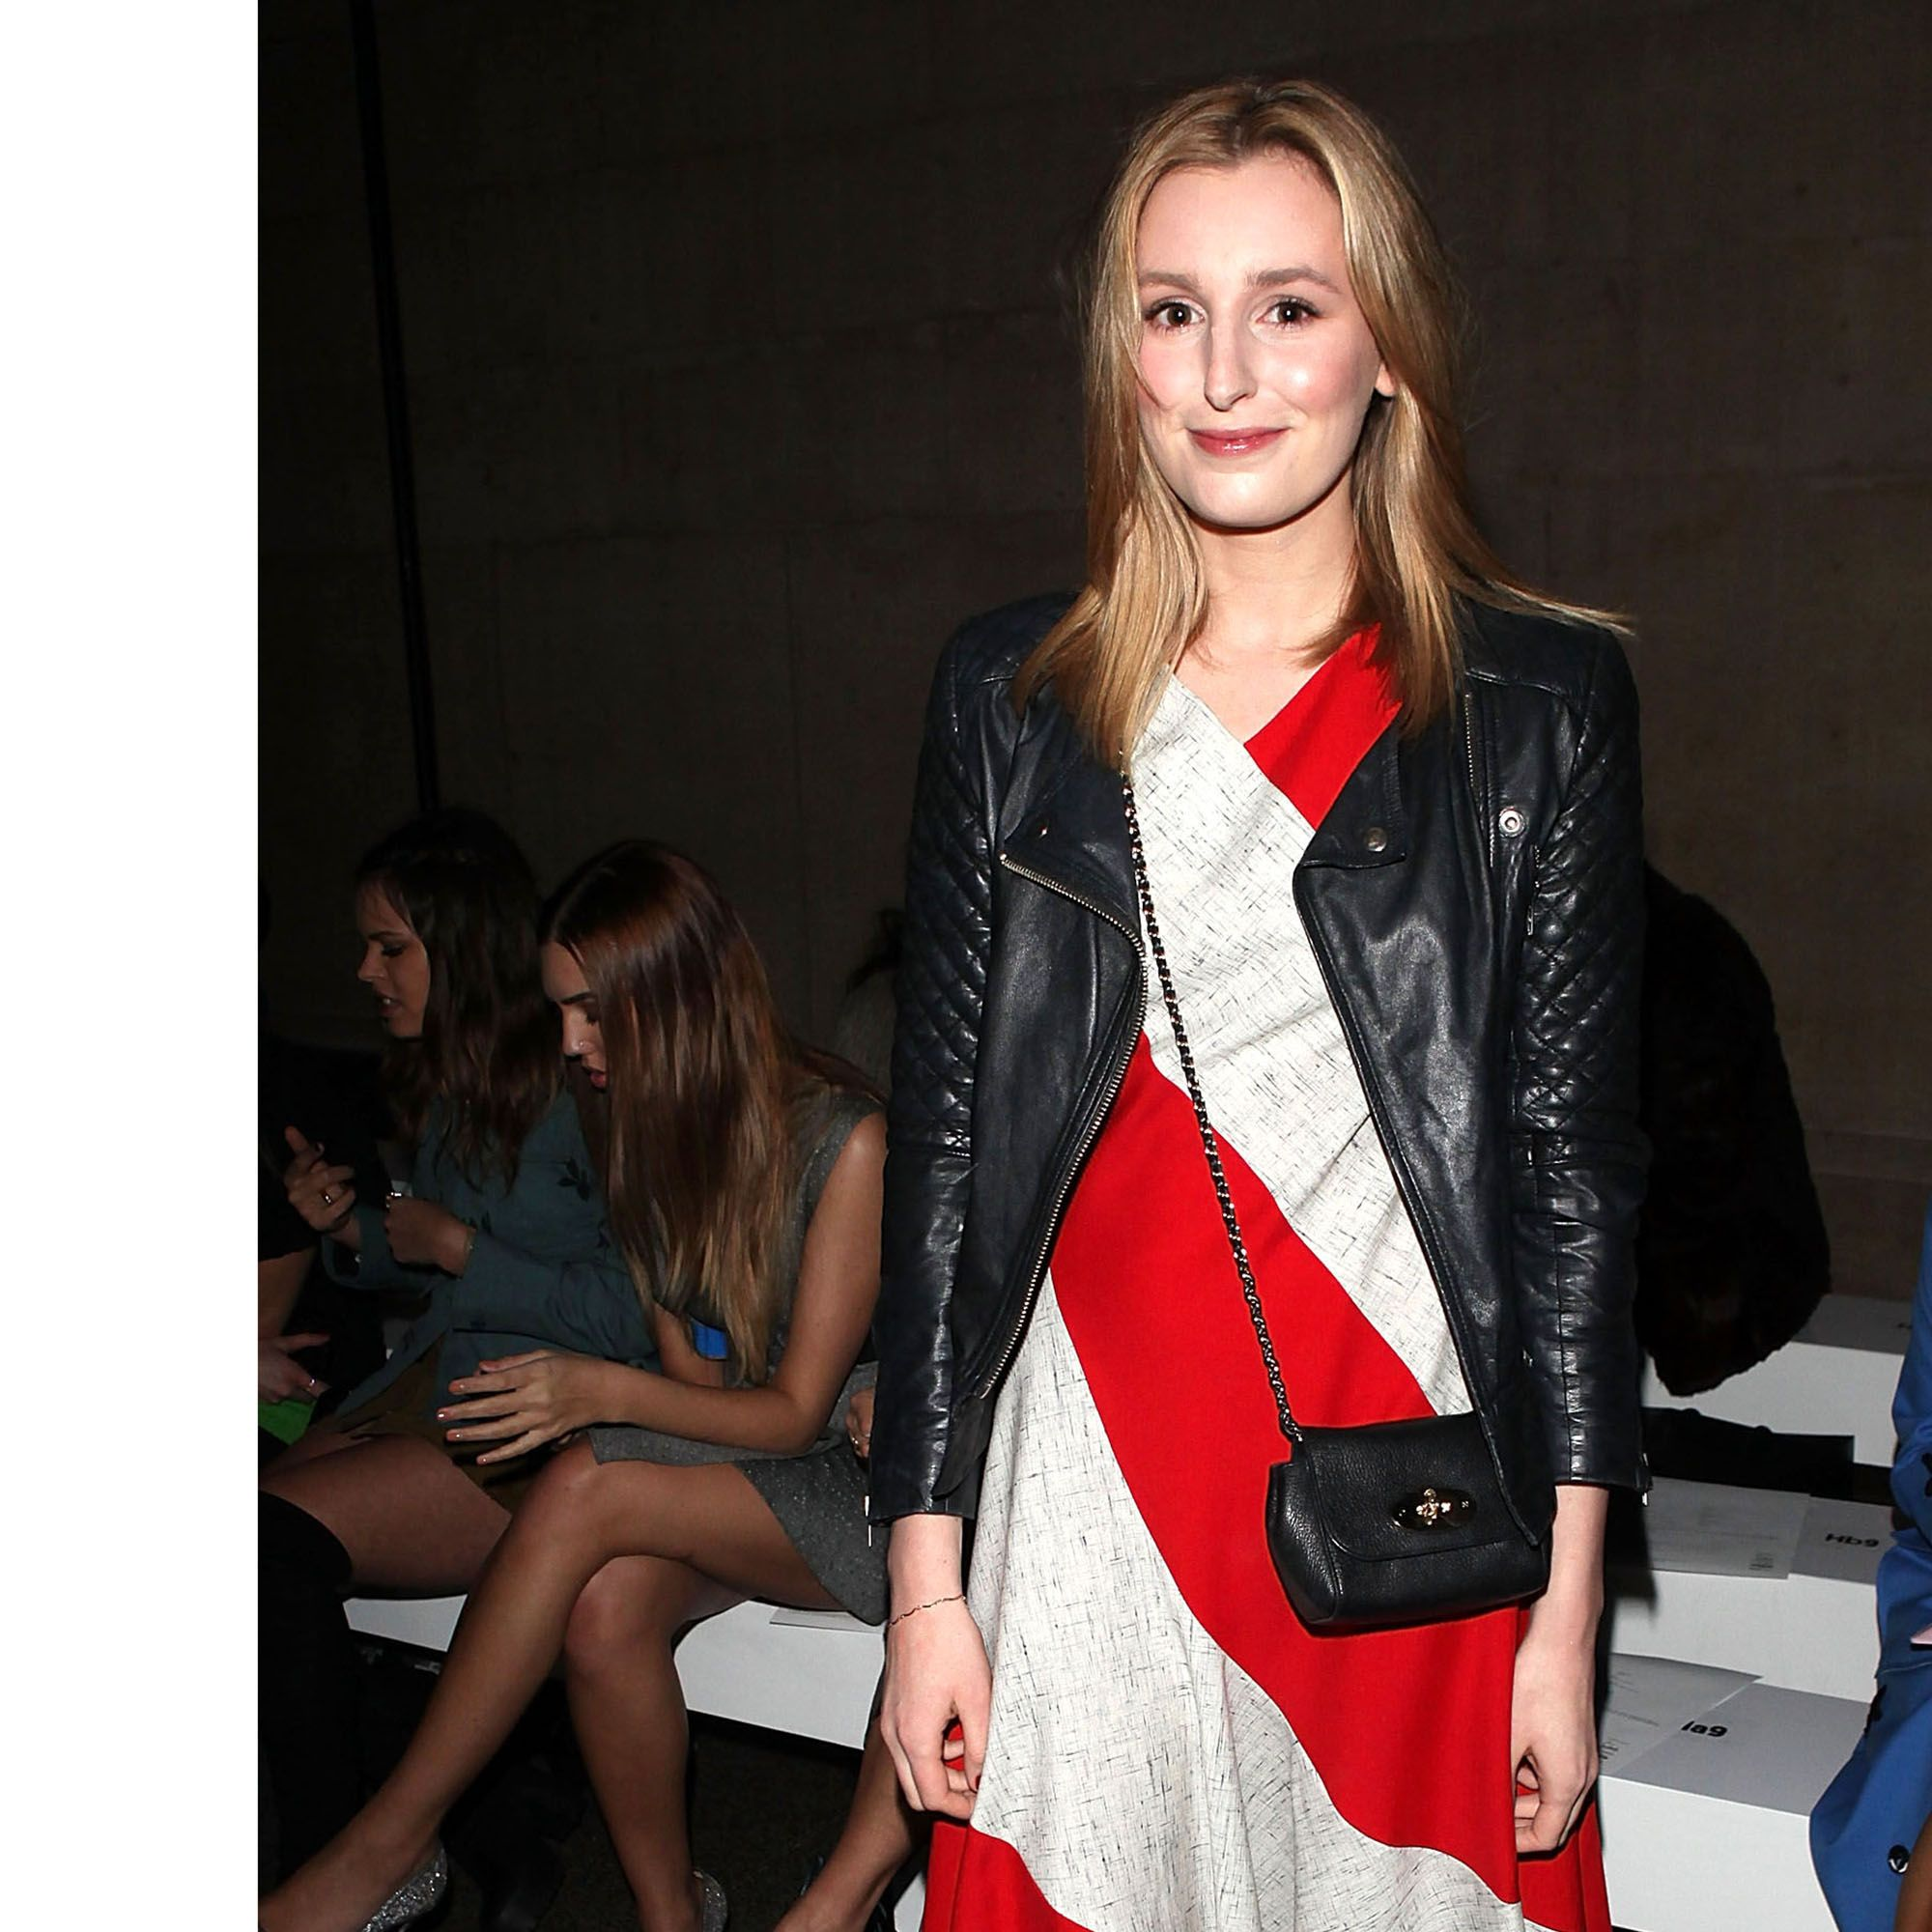 LONDON, ENGLAND - FEBRUARY 22:  Laura Carmichael attends the Jonathan Saunders show during London Fashion Week Fall/Winter 2015/16 at TopShop Show Space on February 22, 2015 in London, England.  (Photo by David M. Benett/Getty Images)